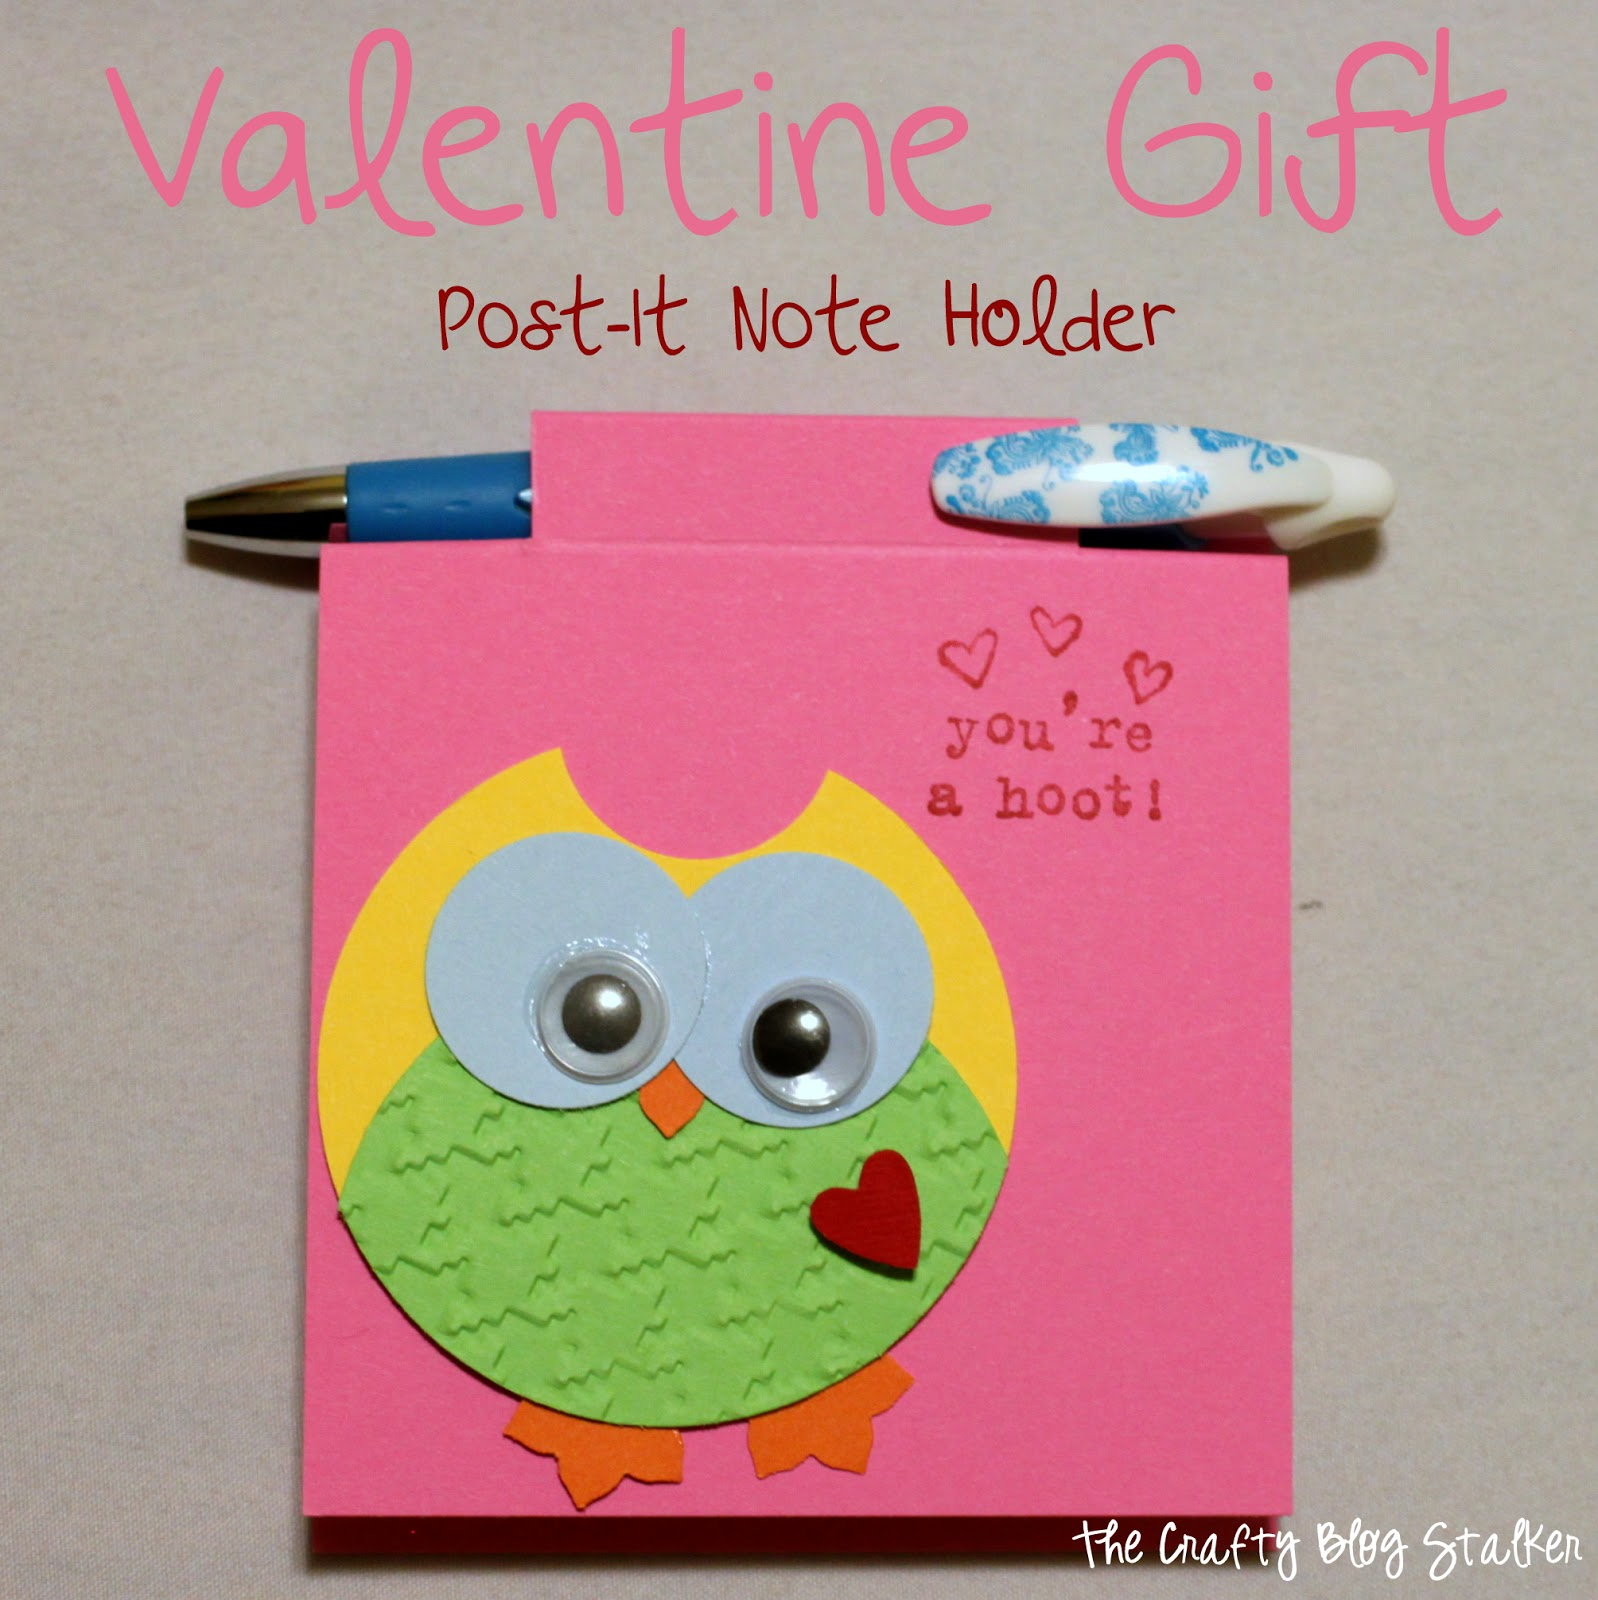 Valentine Gift Post-It Note Holder